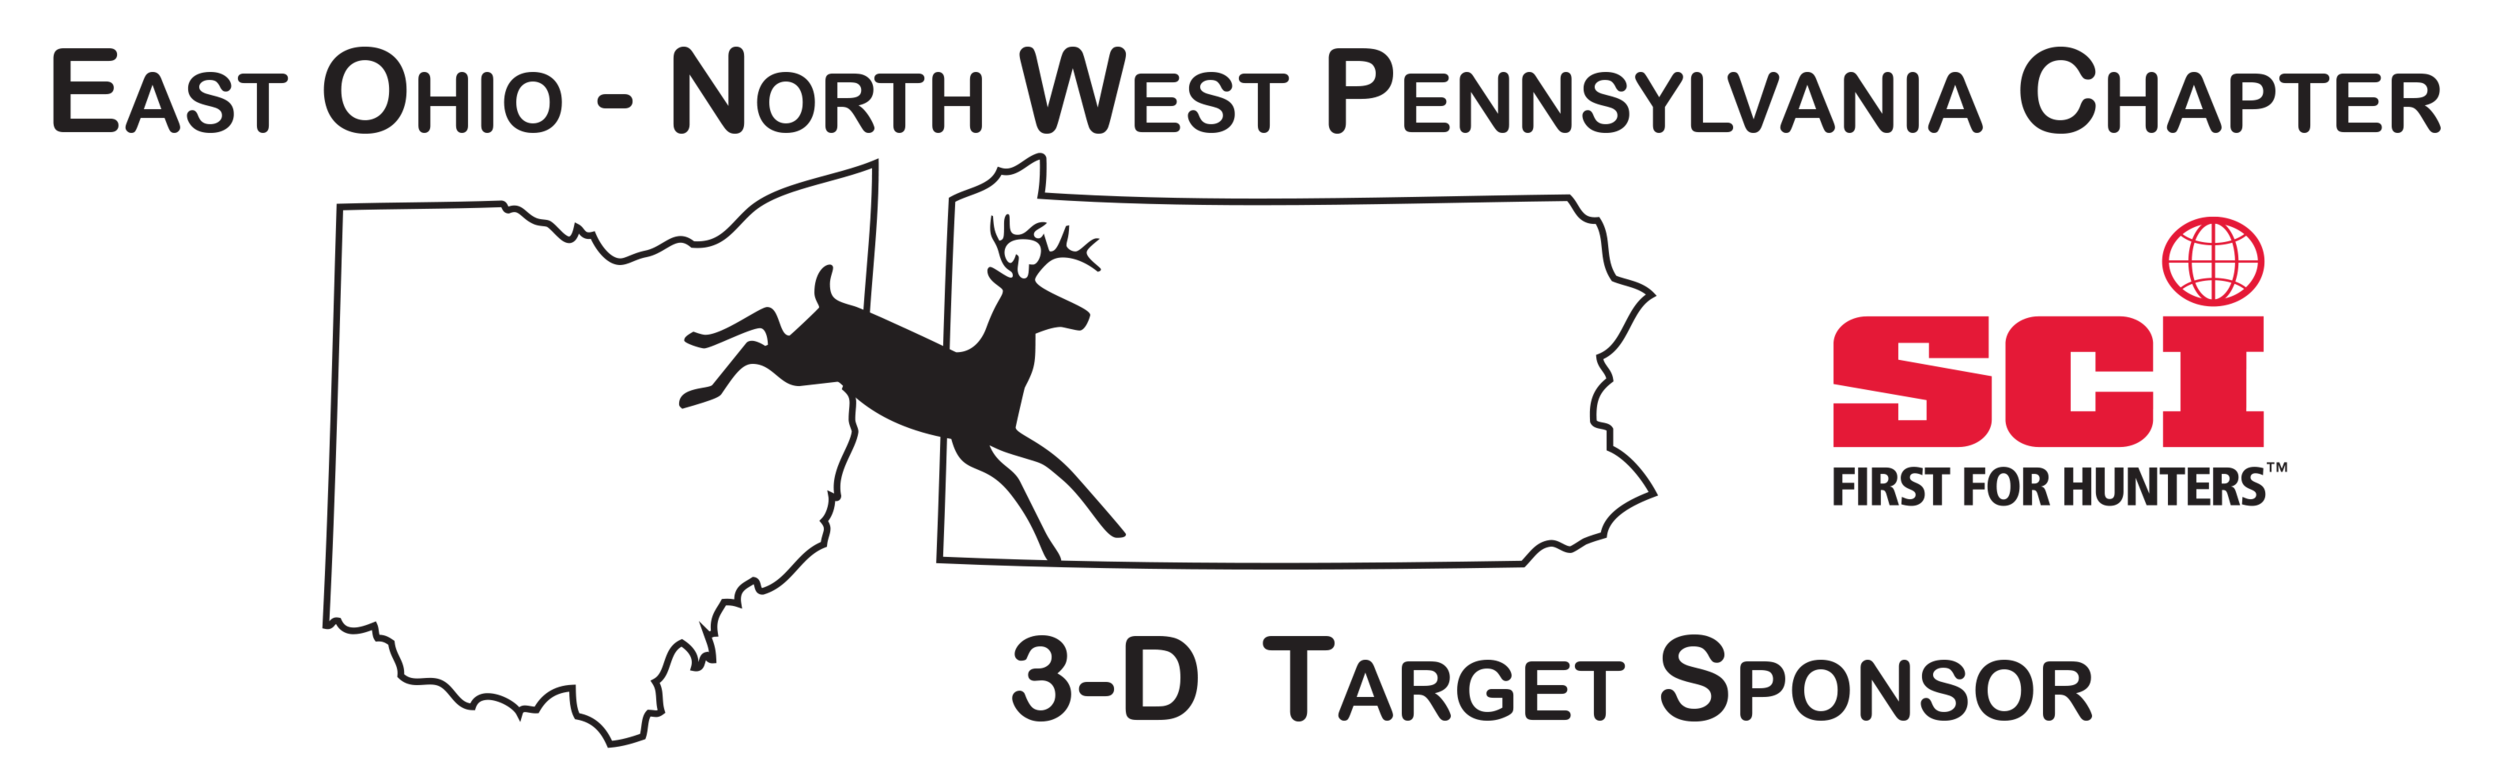 A special thanks to the East Ohio - North West Pennsylvania Chapter of SCI for their contribution to our range and their support of our work with young people.